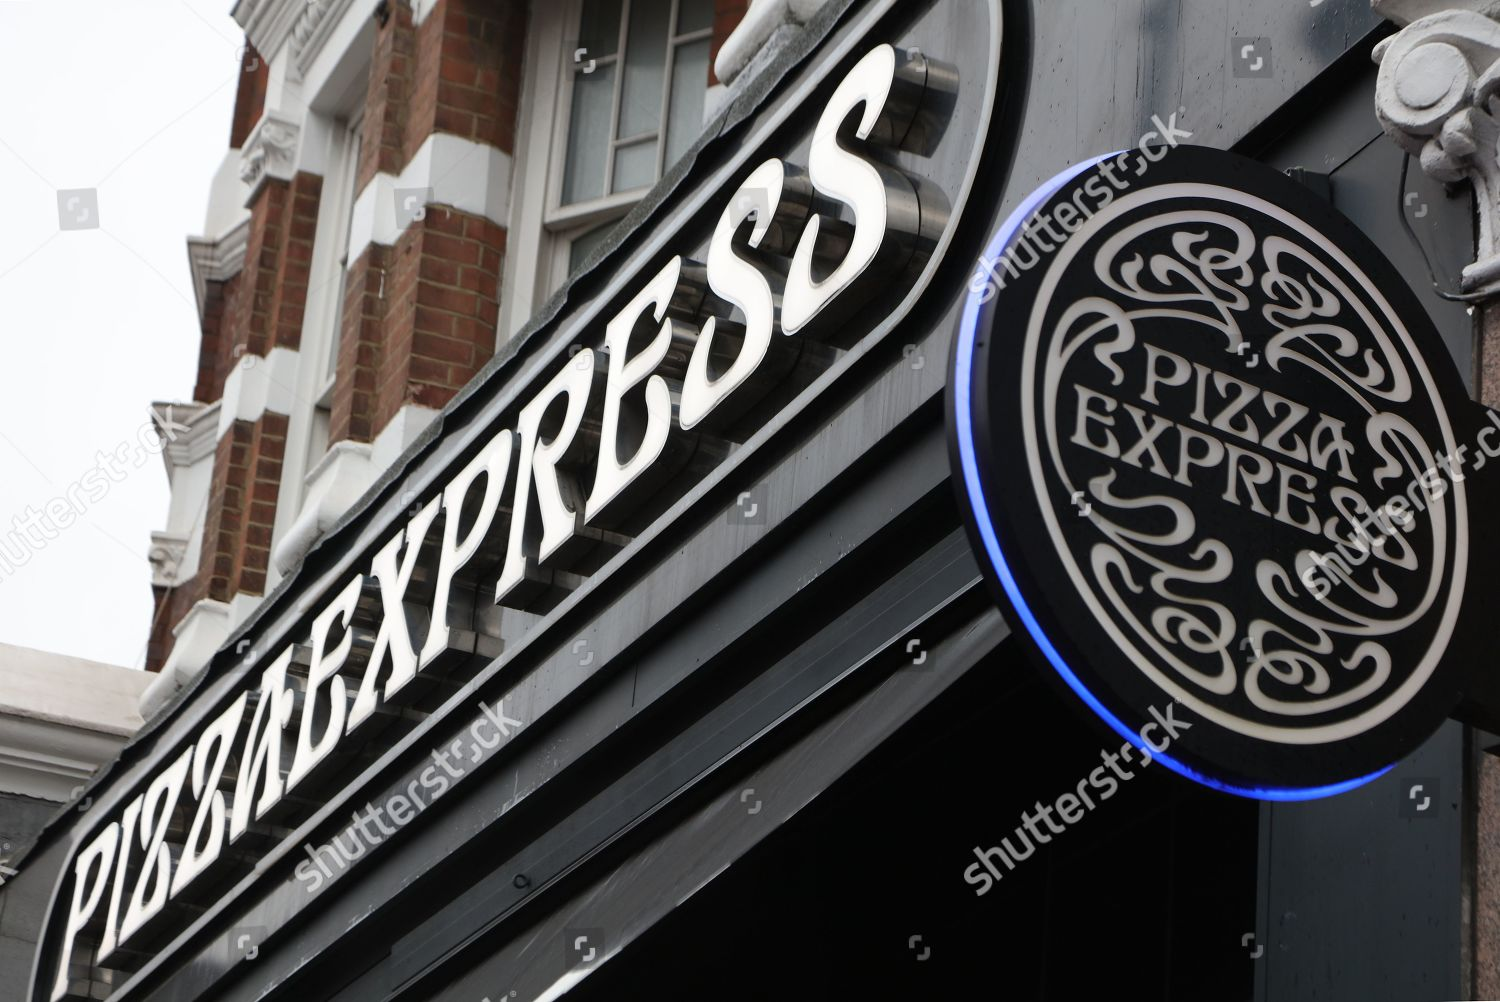 Pizza Express Signage Muswell Hill Branch Editorial Stock